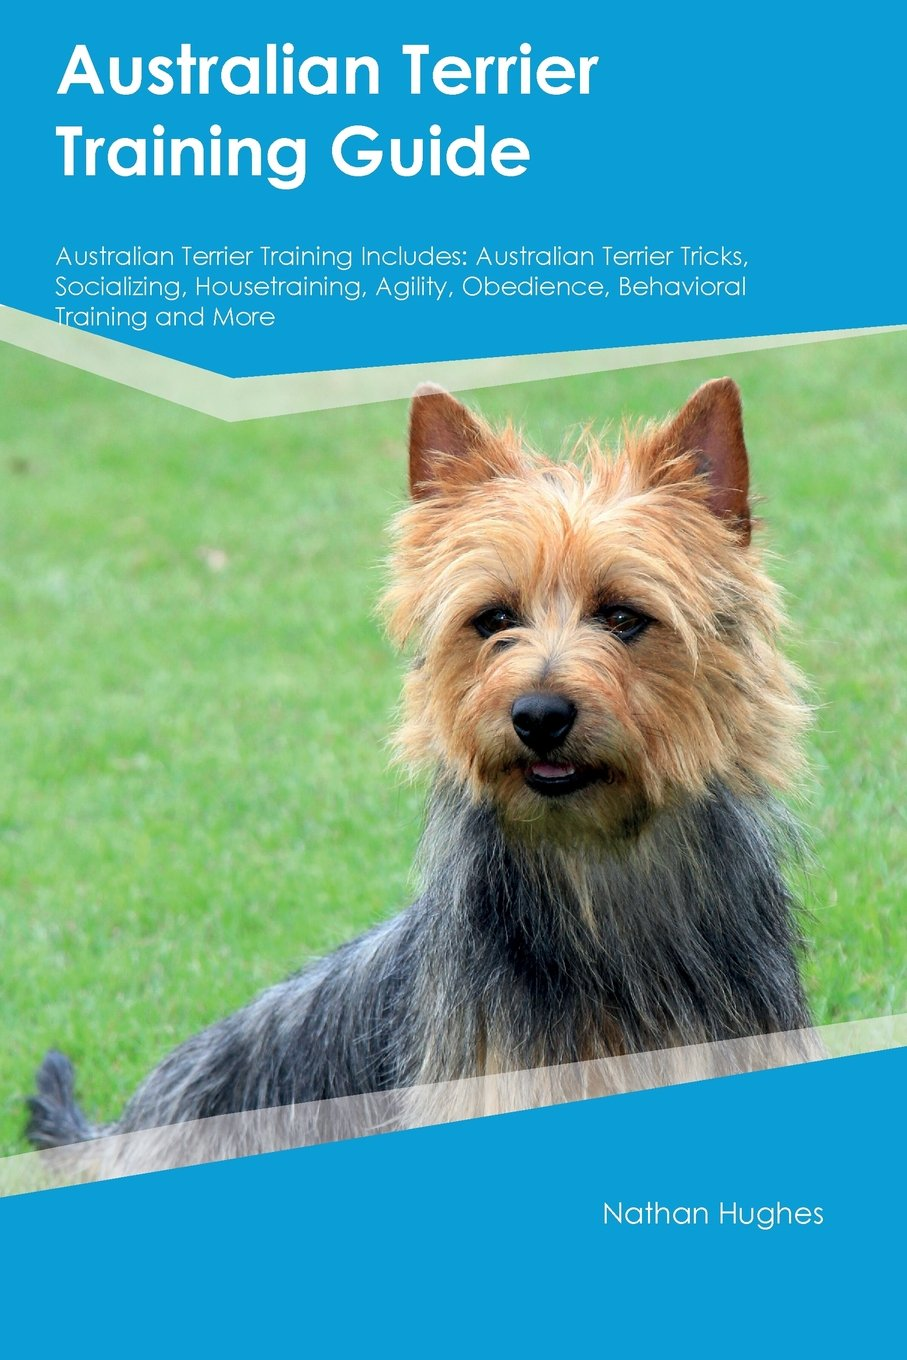 Australian Terrier Training Guide Australian Terrier Training Includes: Australian Terrier Tricks, Socializing, Housetraining, Agility, Obedience, Behavioral Training and More